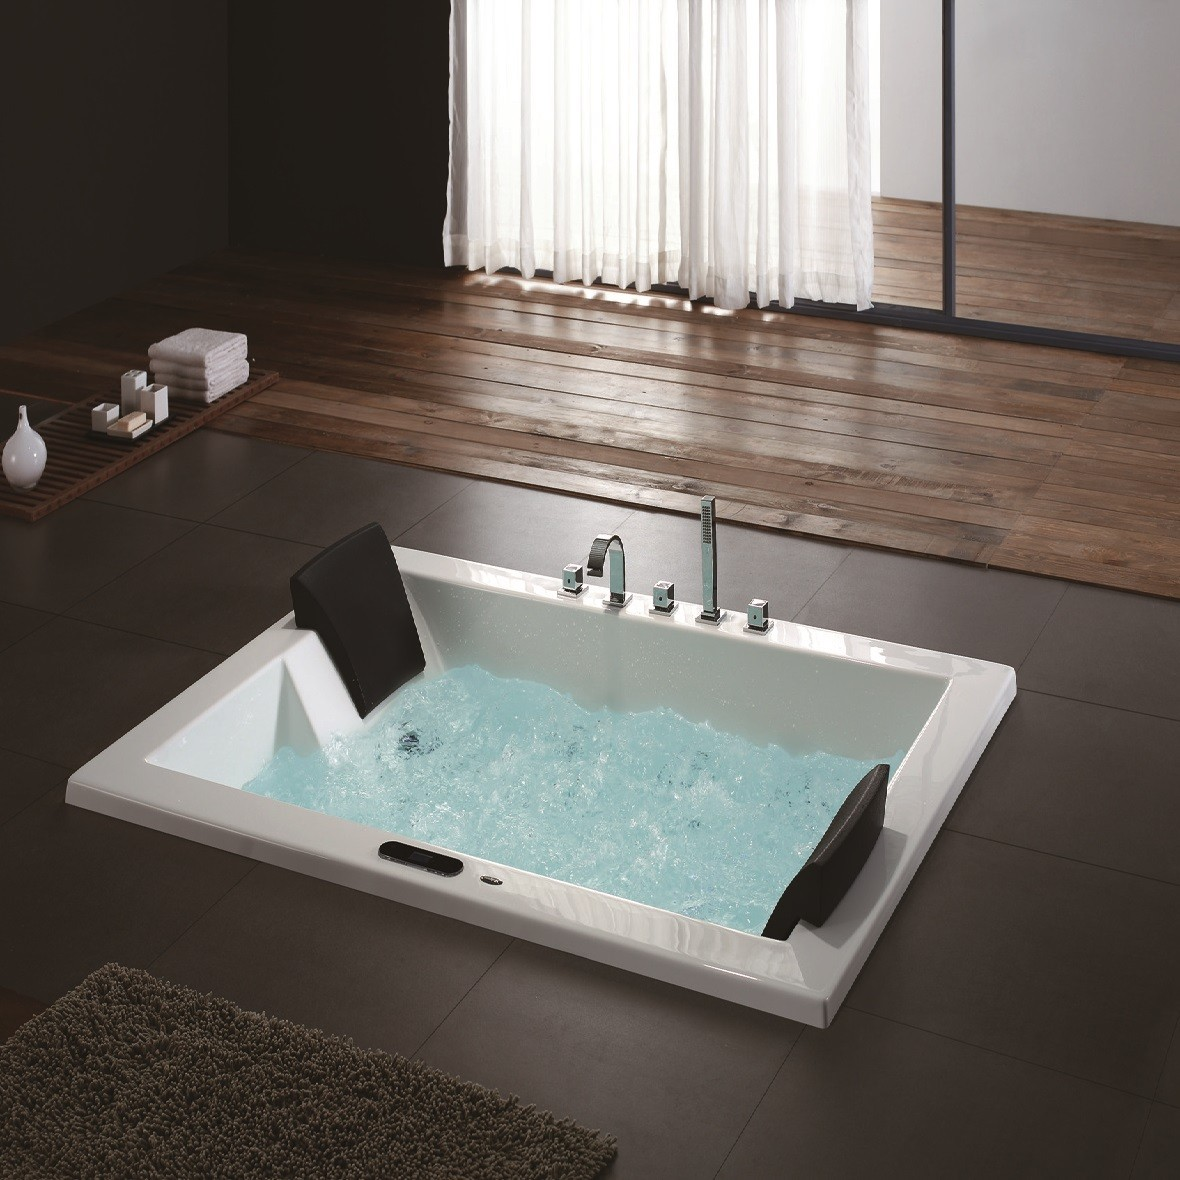 Astoria Luxury Whirlpool Tub